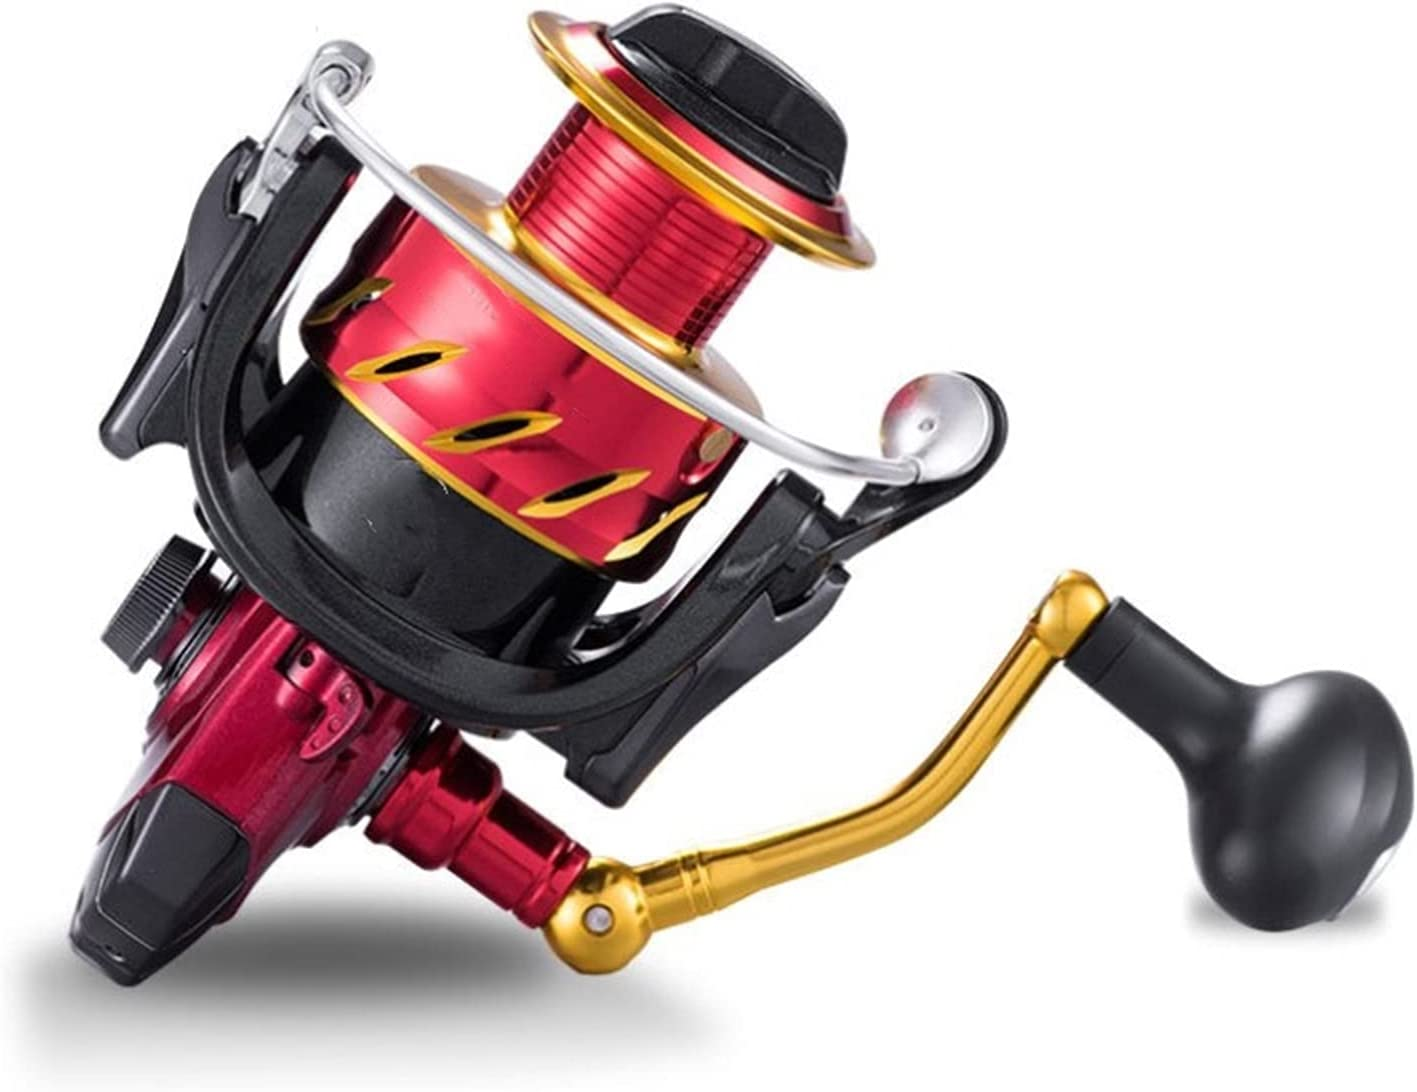 ACYC Fishing Reels Two-Color Metal Wire Series CS 2021 Bombing free shipping C Seamless Cup